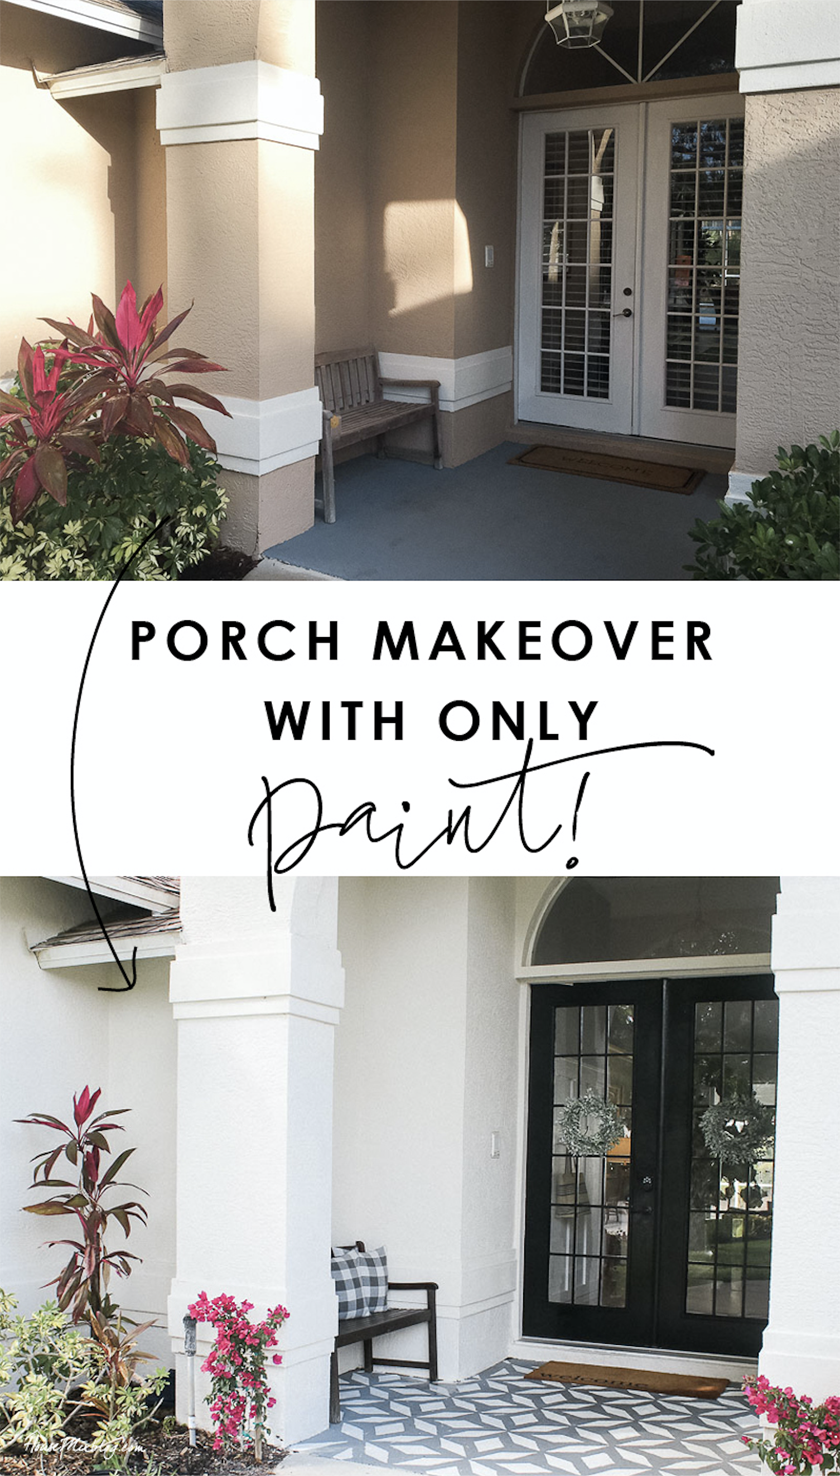 Porch Makeover I Painted The Walls Doors And Floor Porch Makeover Front Porch Makeover Doors And Floors